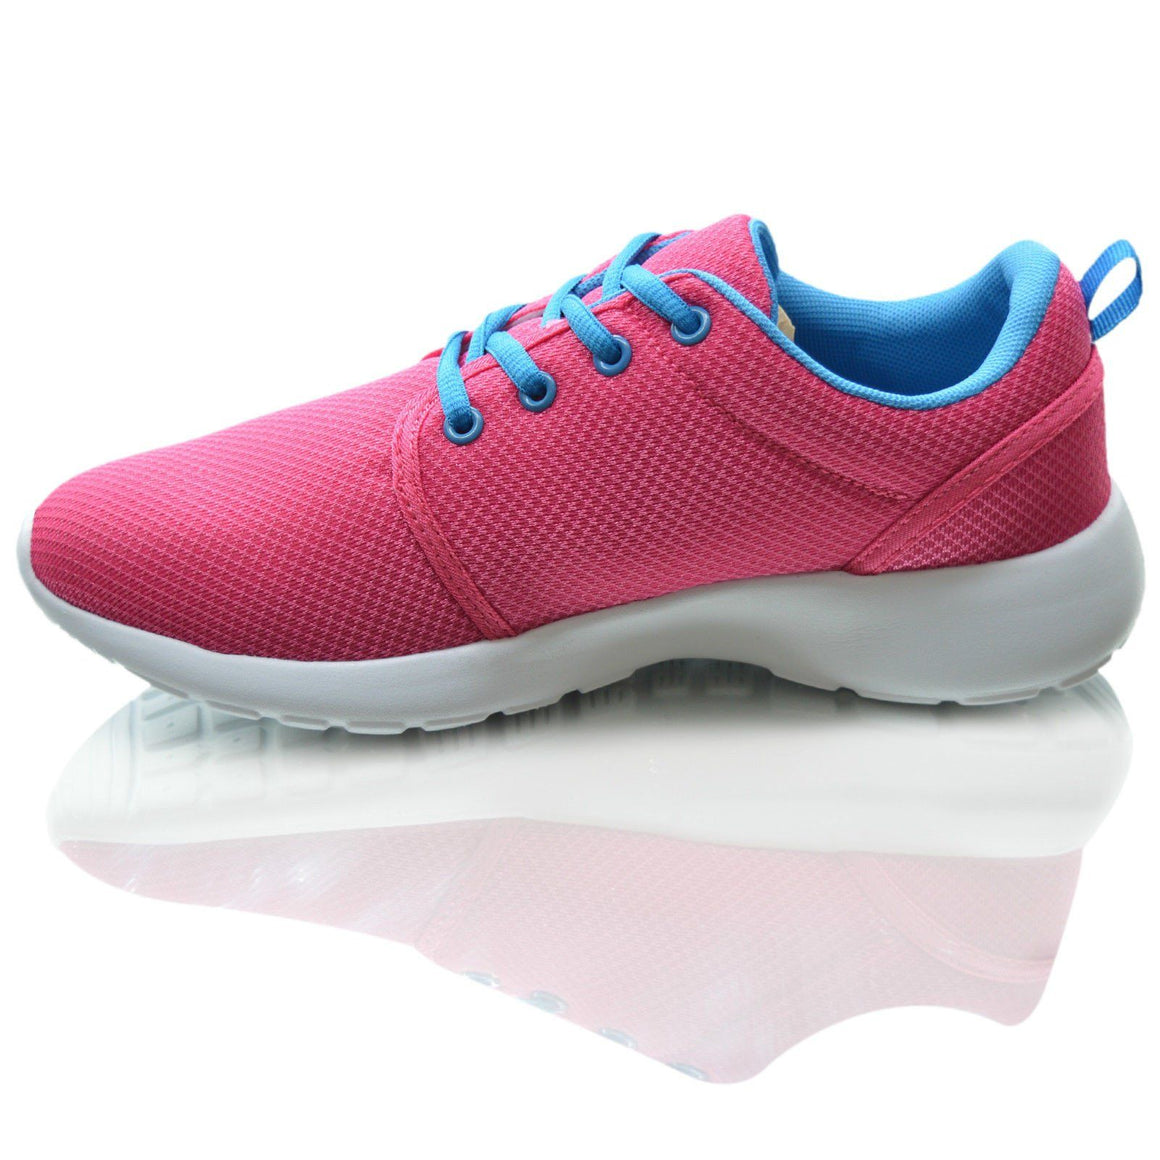 Girls Mesh Lightwieght Running Shoes Plimsolls Trainers Sneaker